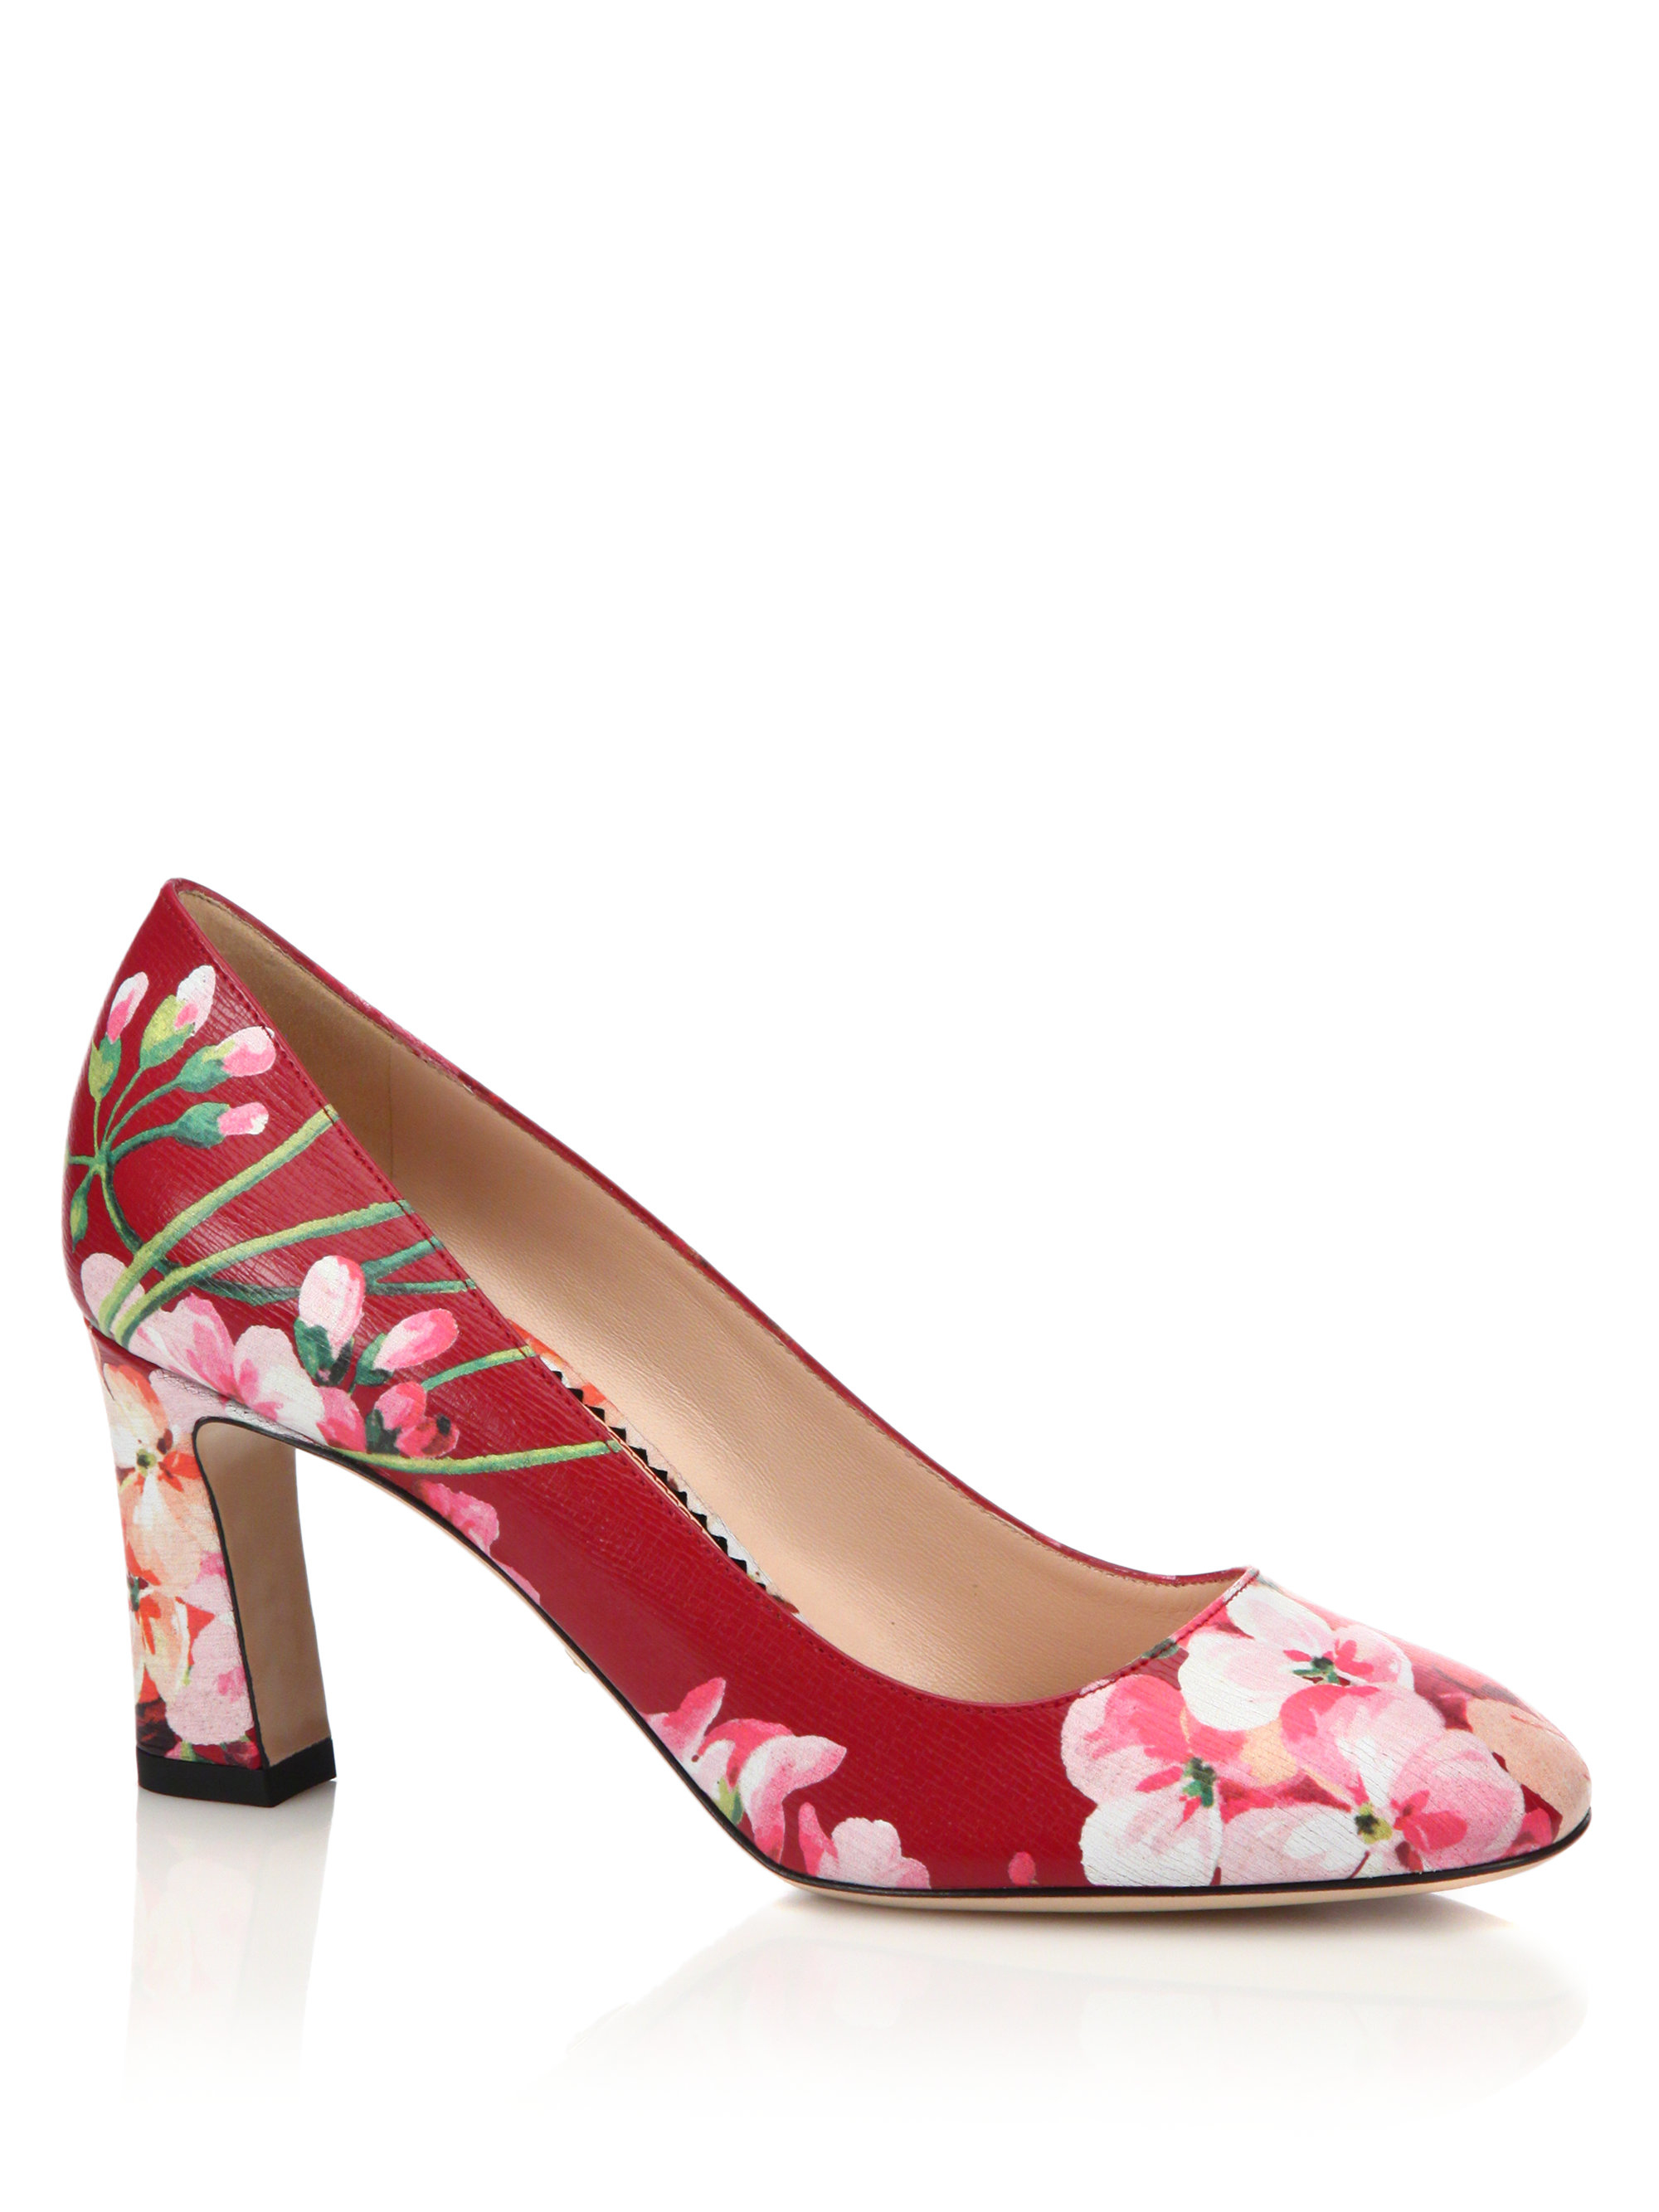 Lyst Gucci Marine Floral Leather Pumps In Pink